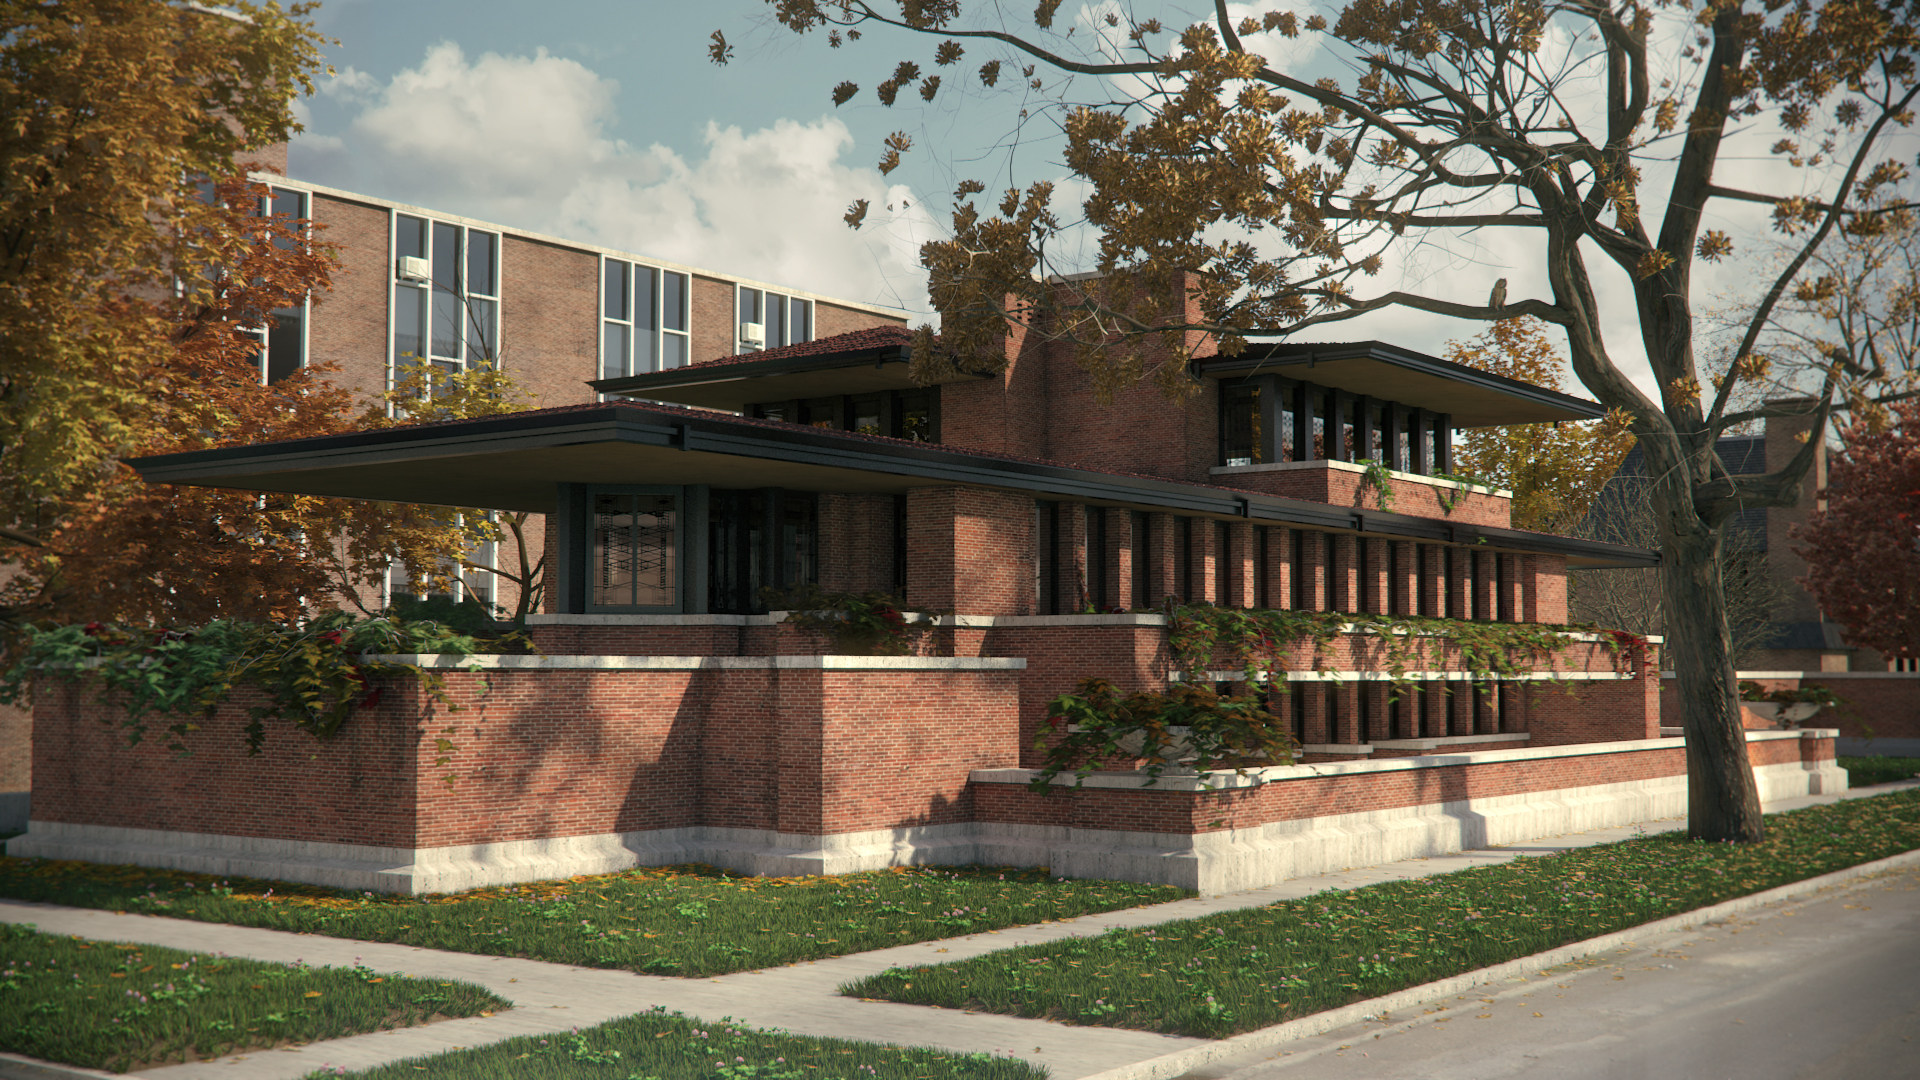 The robie house by frank lloyd wright 1920x1080 for Frank lloyd wright prairie style house plans